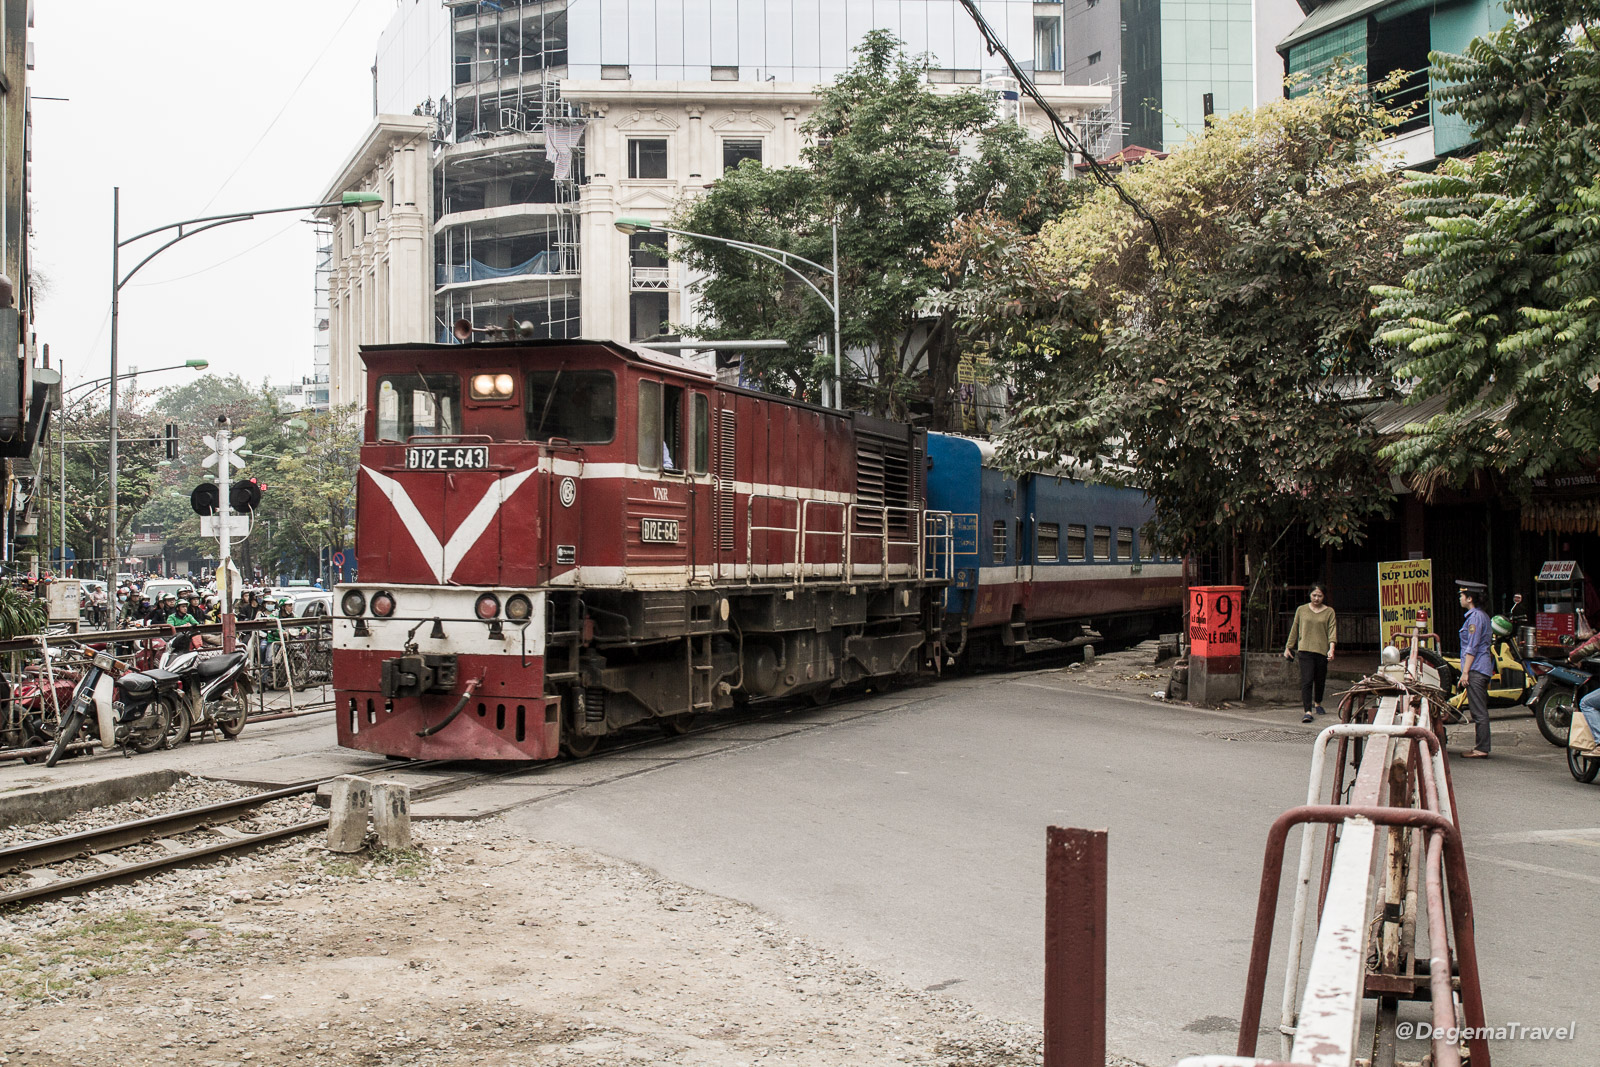 A train in Hanoi, Vietnam